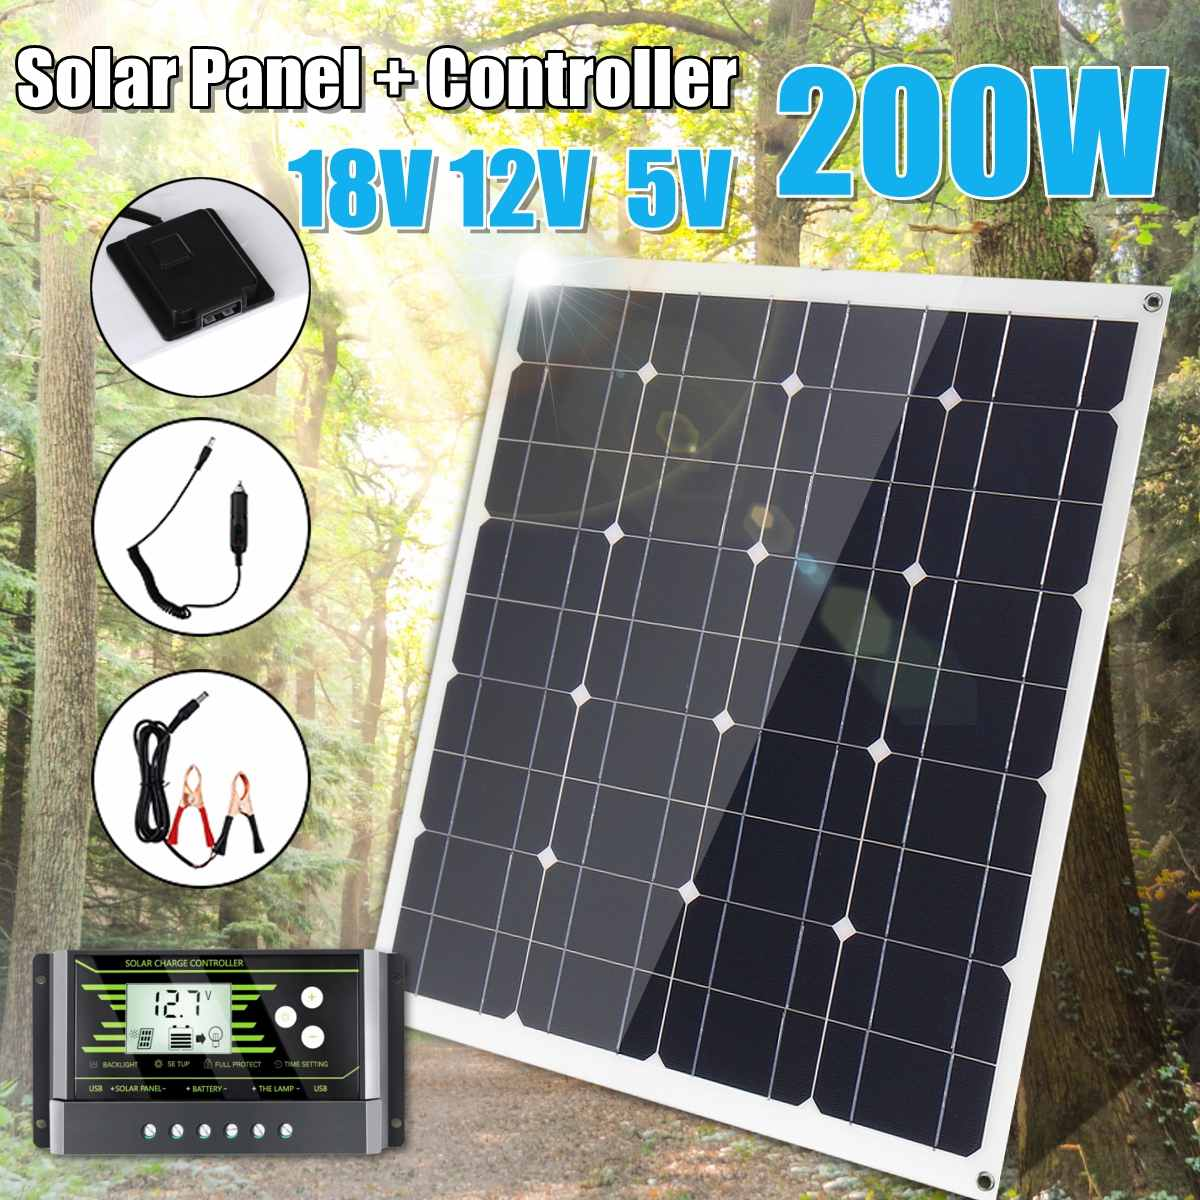 Newest <font><b>200W</b></font> <font><b>Solar</b></font> <font><b>Panel</b></font> 18V 5V Flexible MonoCrystalline Silicon With 10/20/30A Controller for Outdoor <font><b>Solar</b></font> Battery image